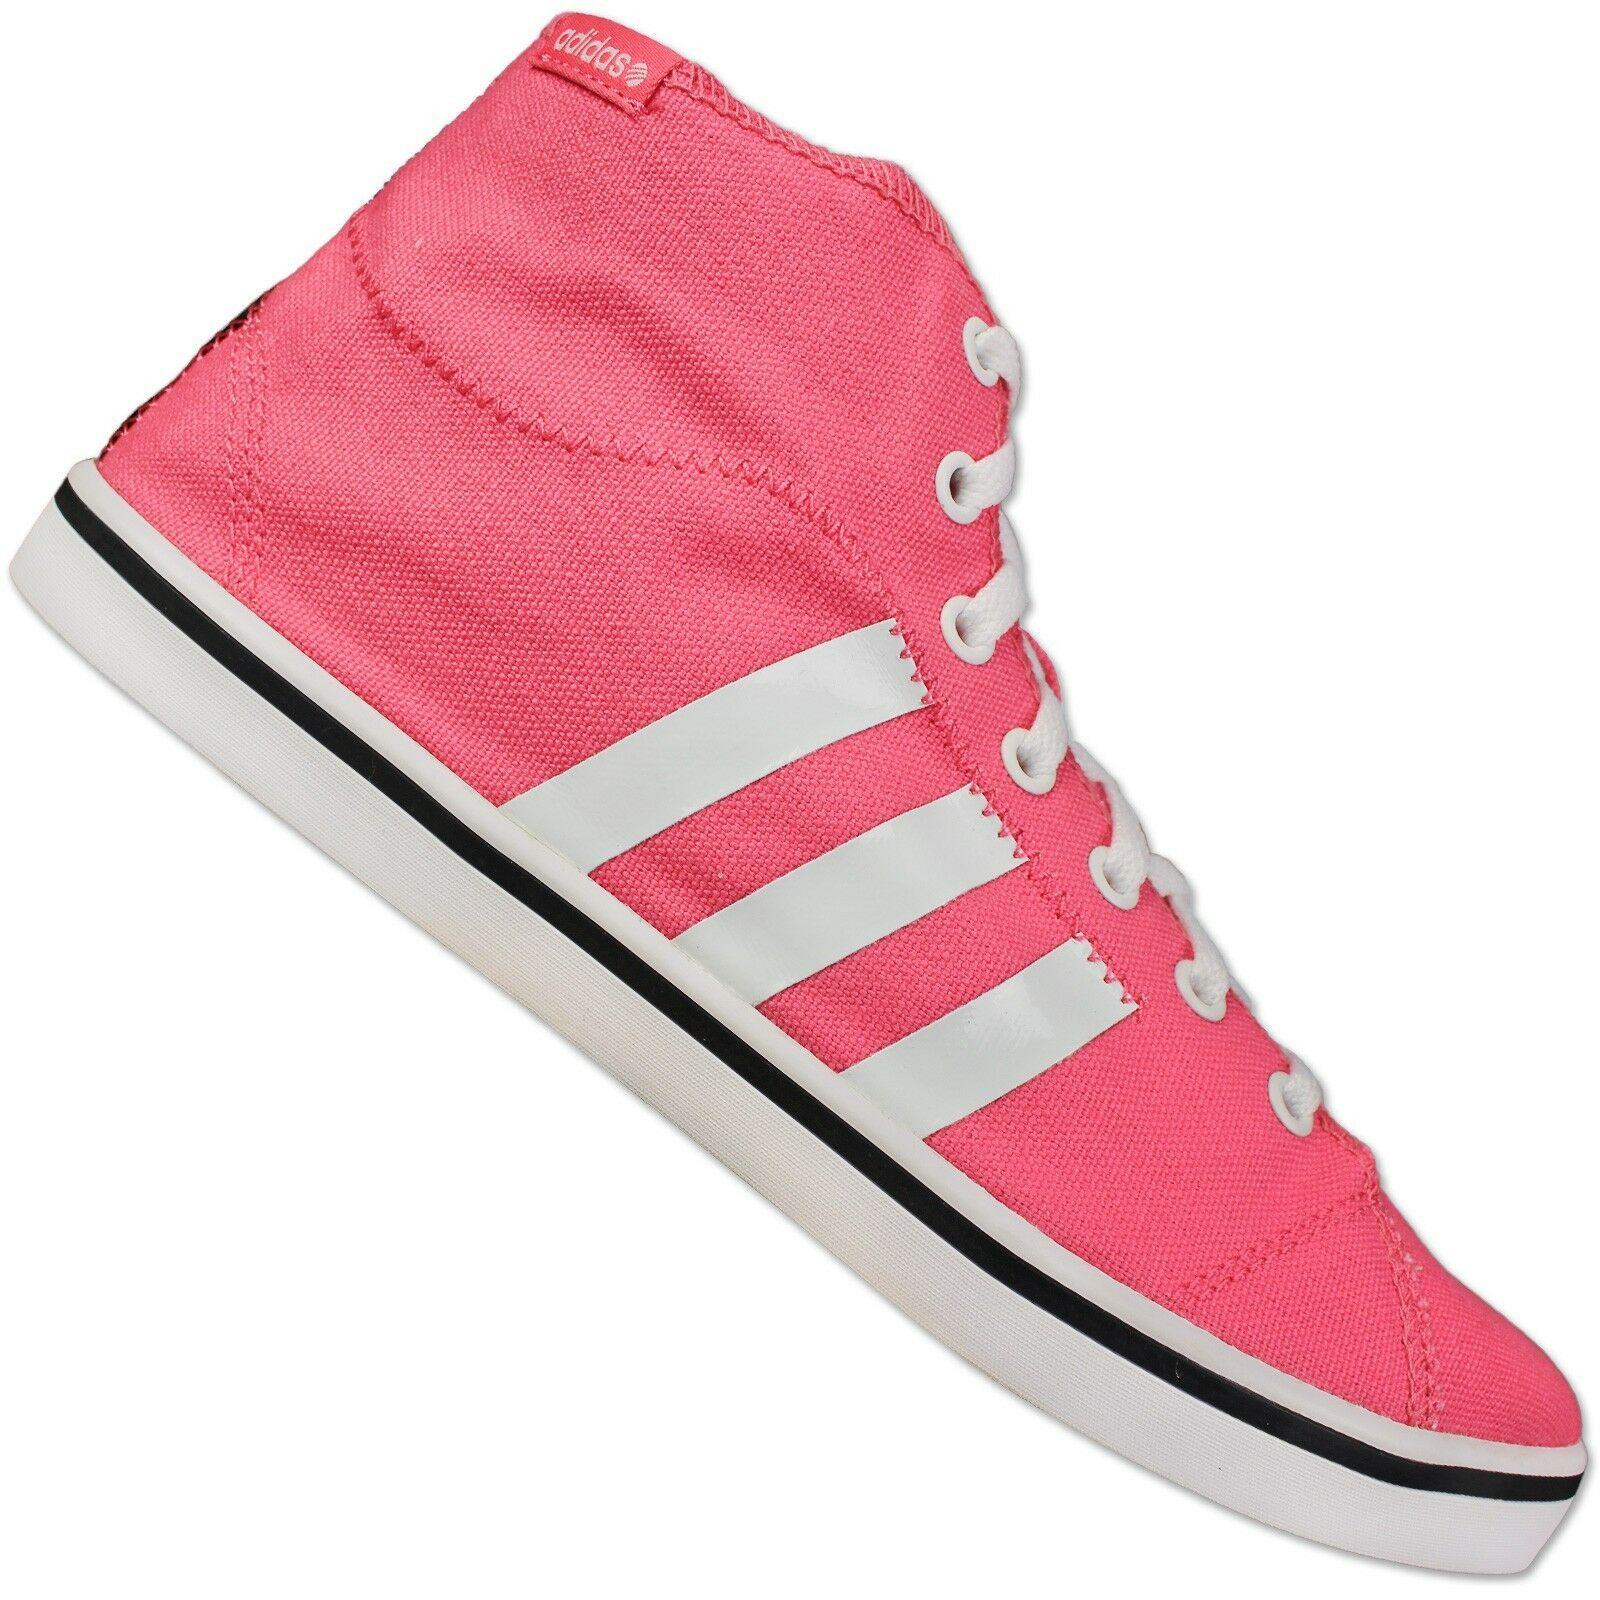 Adidas Neo Canvas Vlneo Bball Ladies mid Top Trainers Lifestyle Summer shoes